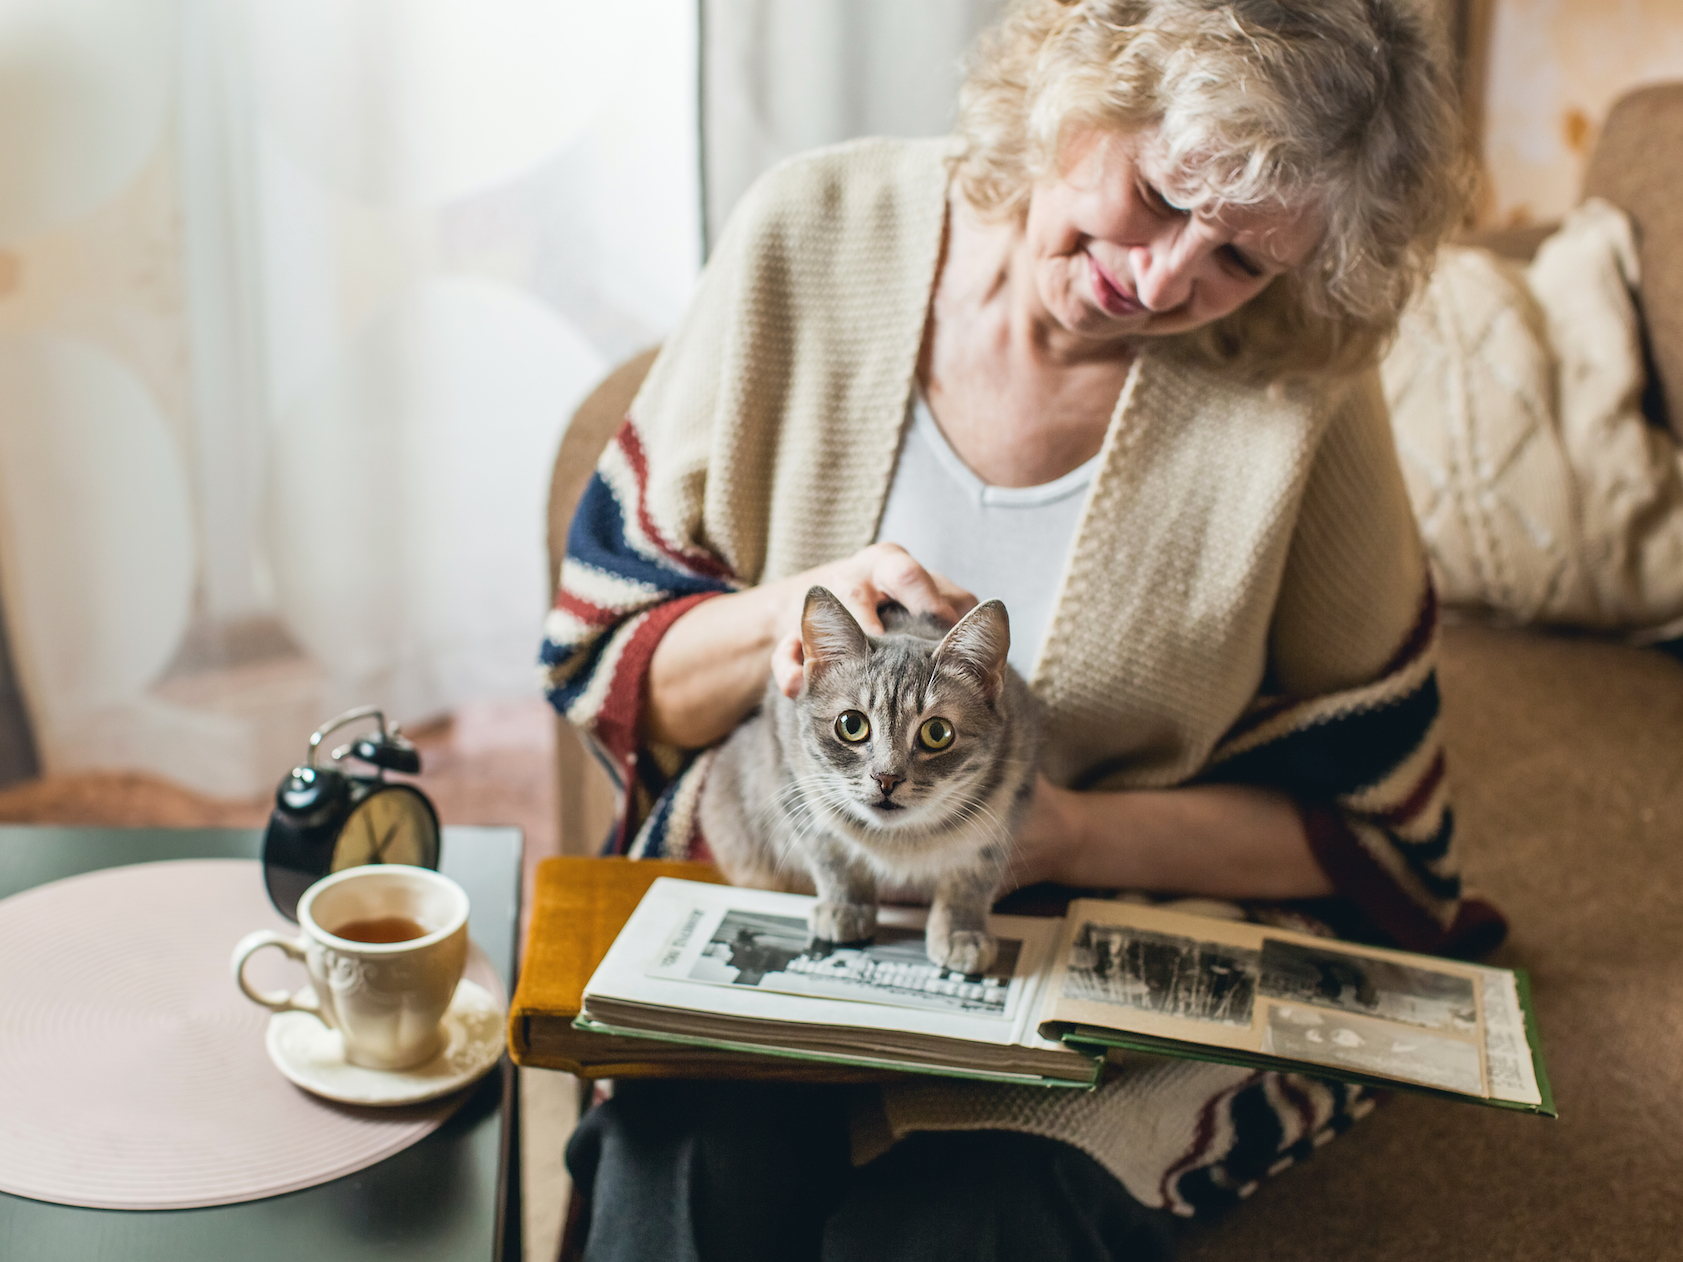 Cats appear to have better relationships with older women, according to a new article by a university expert in animal behavior.